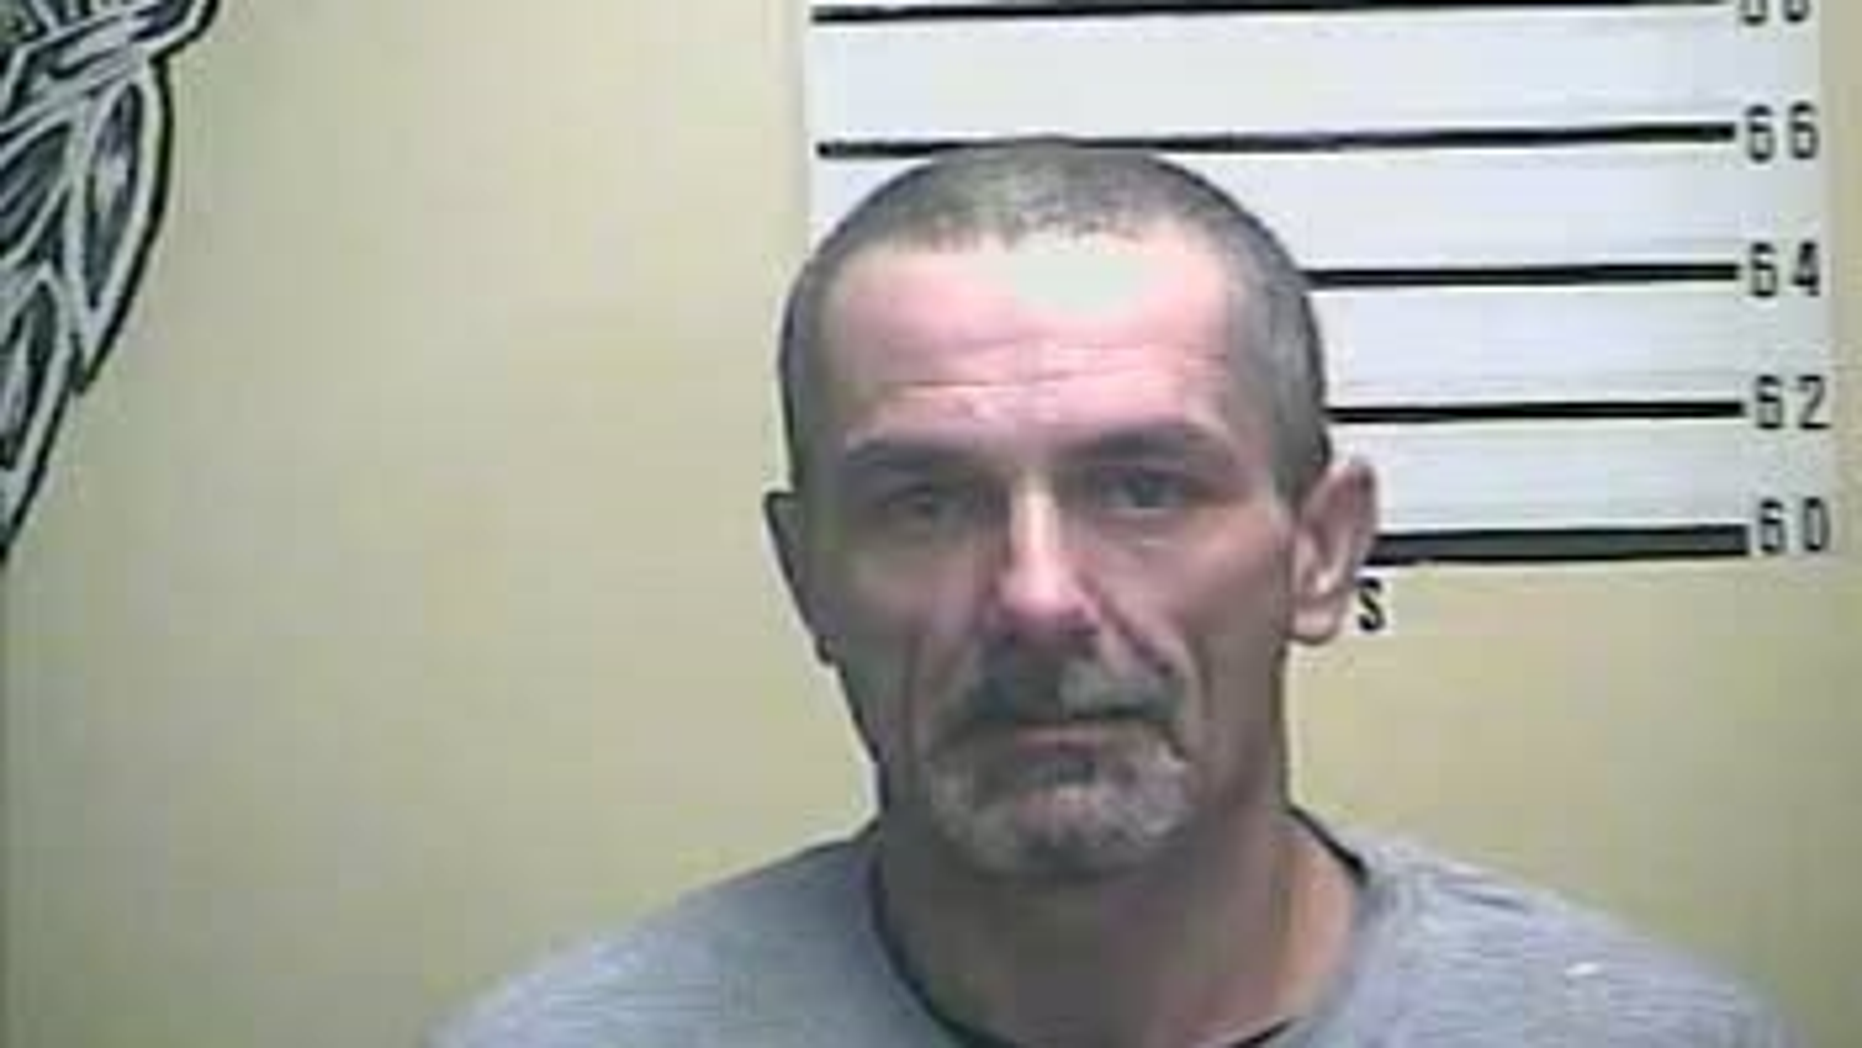 Johnny Dale Lankford faces a charge of harboring a vicious animal following a pit bull attack on Christmas Eve in which a woman was killed and her husband injured